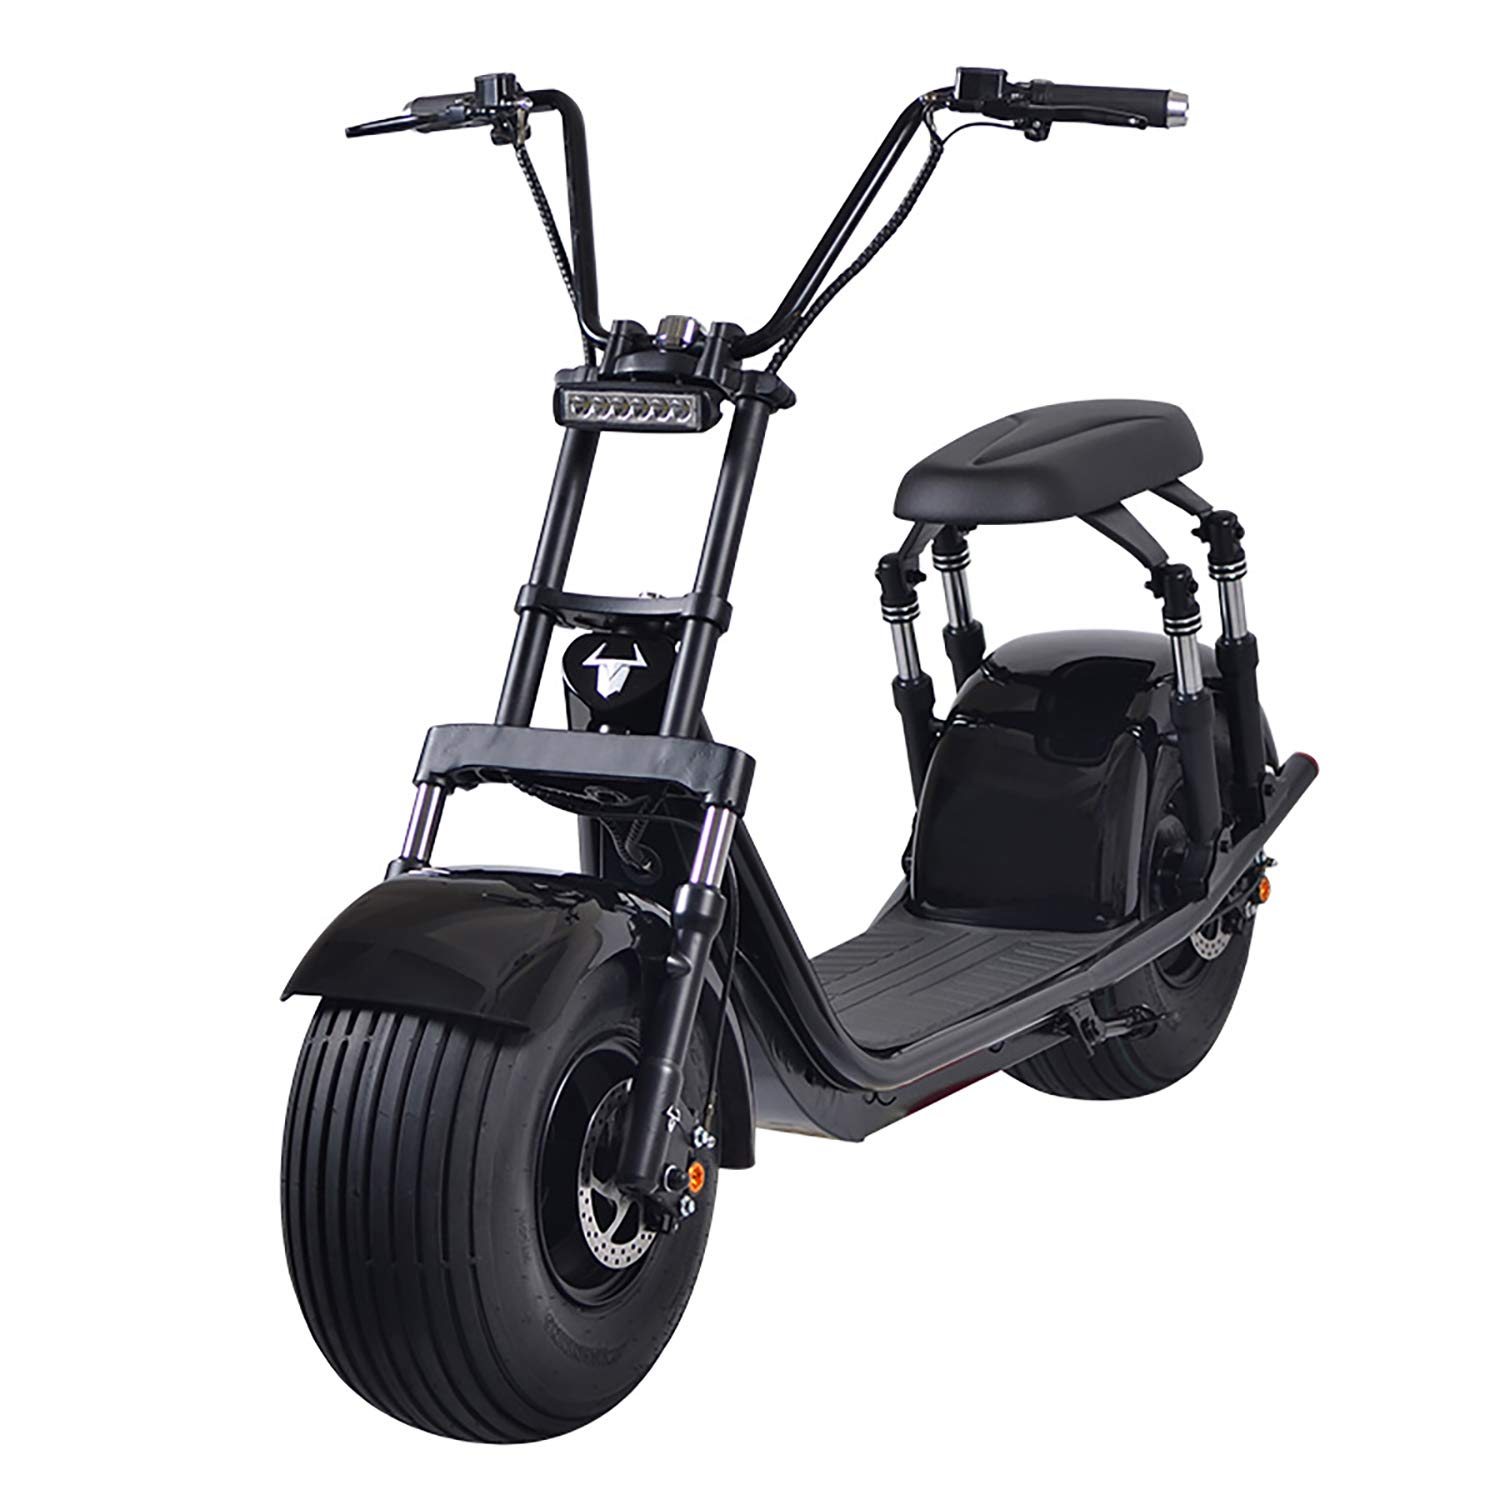 2000W Electric Moped Fat Tire Scooter with Front/Rear Shocks, Dual Disc Brakes One Button Start Electric Fat Tire Motor Bike for Adult with 2 Seats/Backrest/Cargo/Helmet,60V 21.8Ah